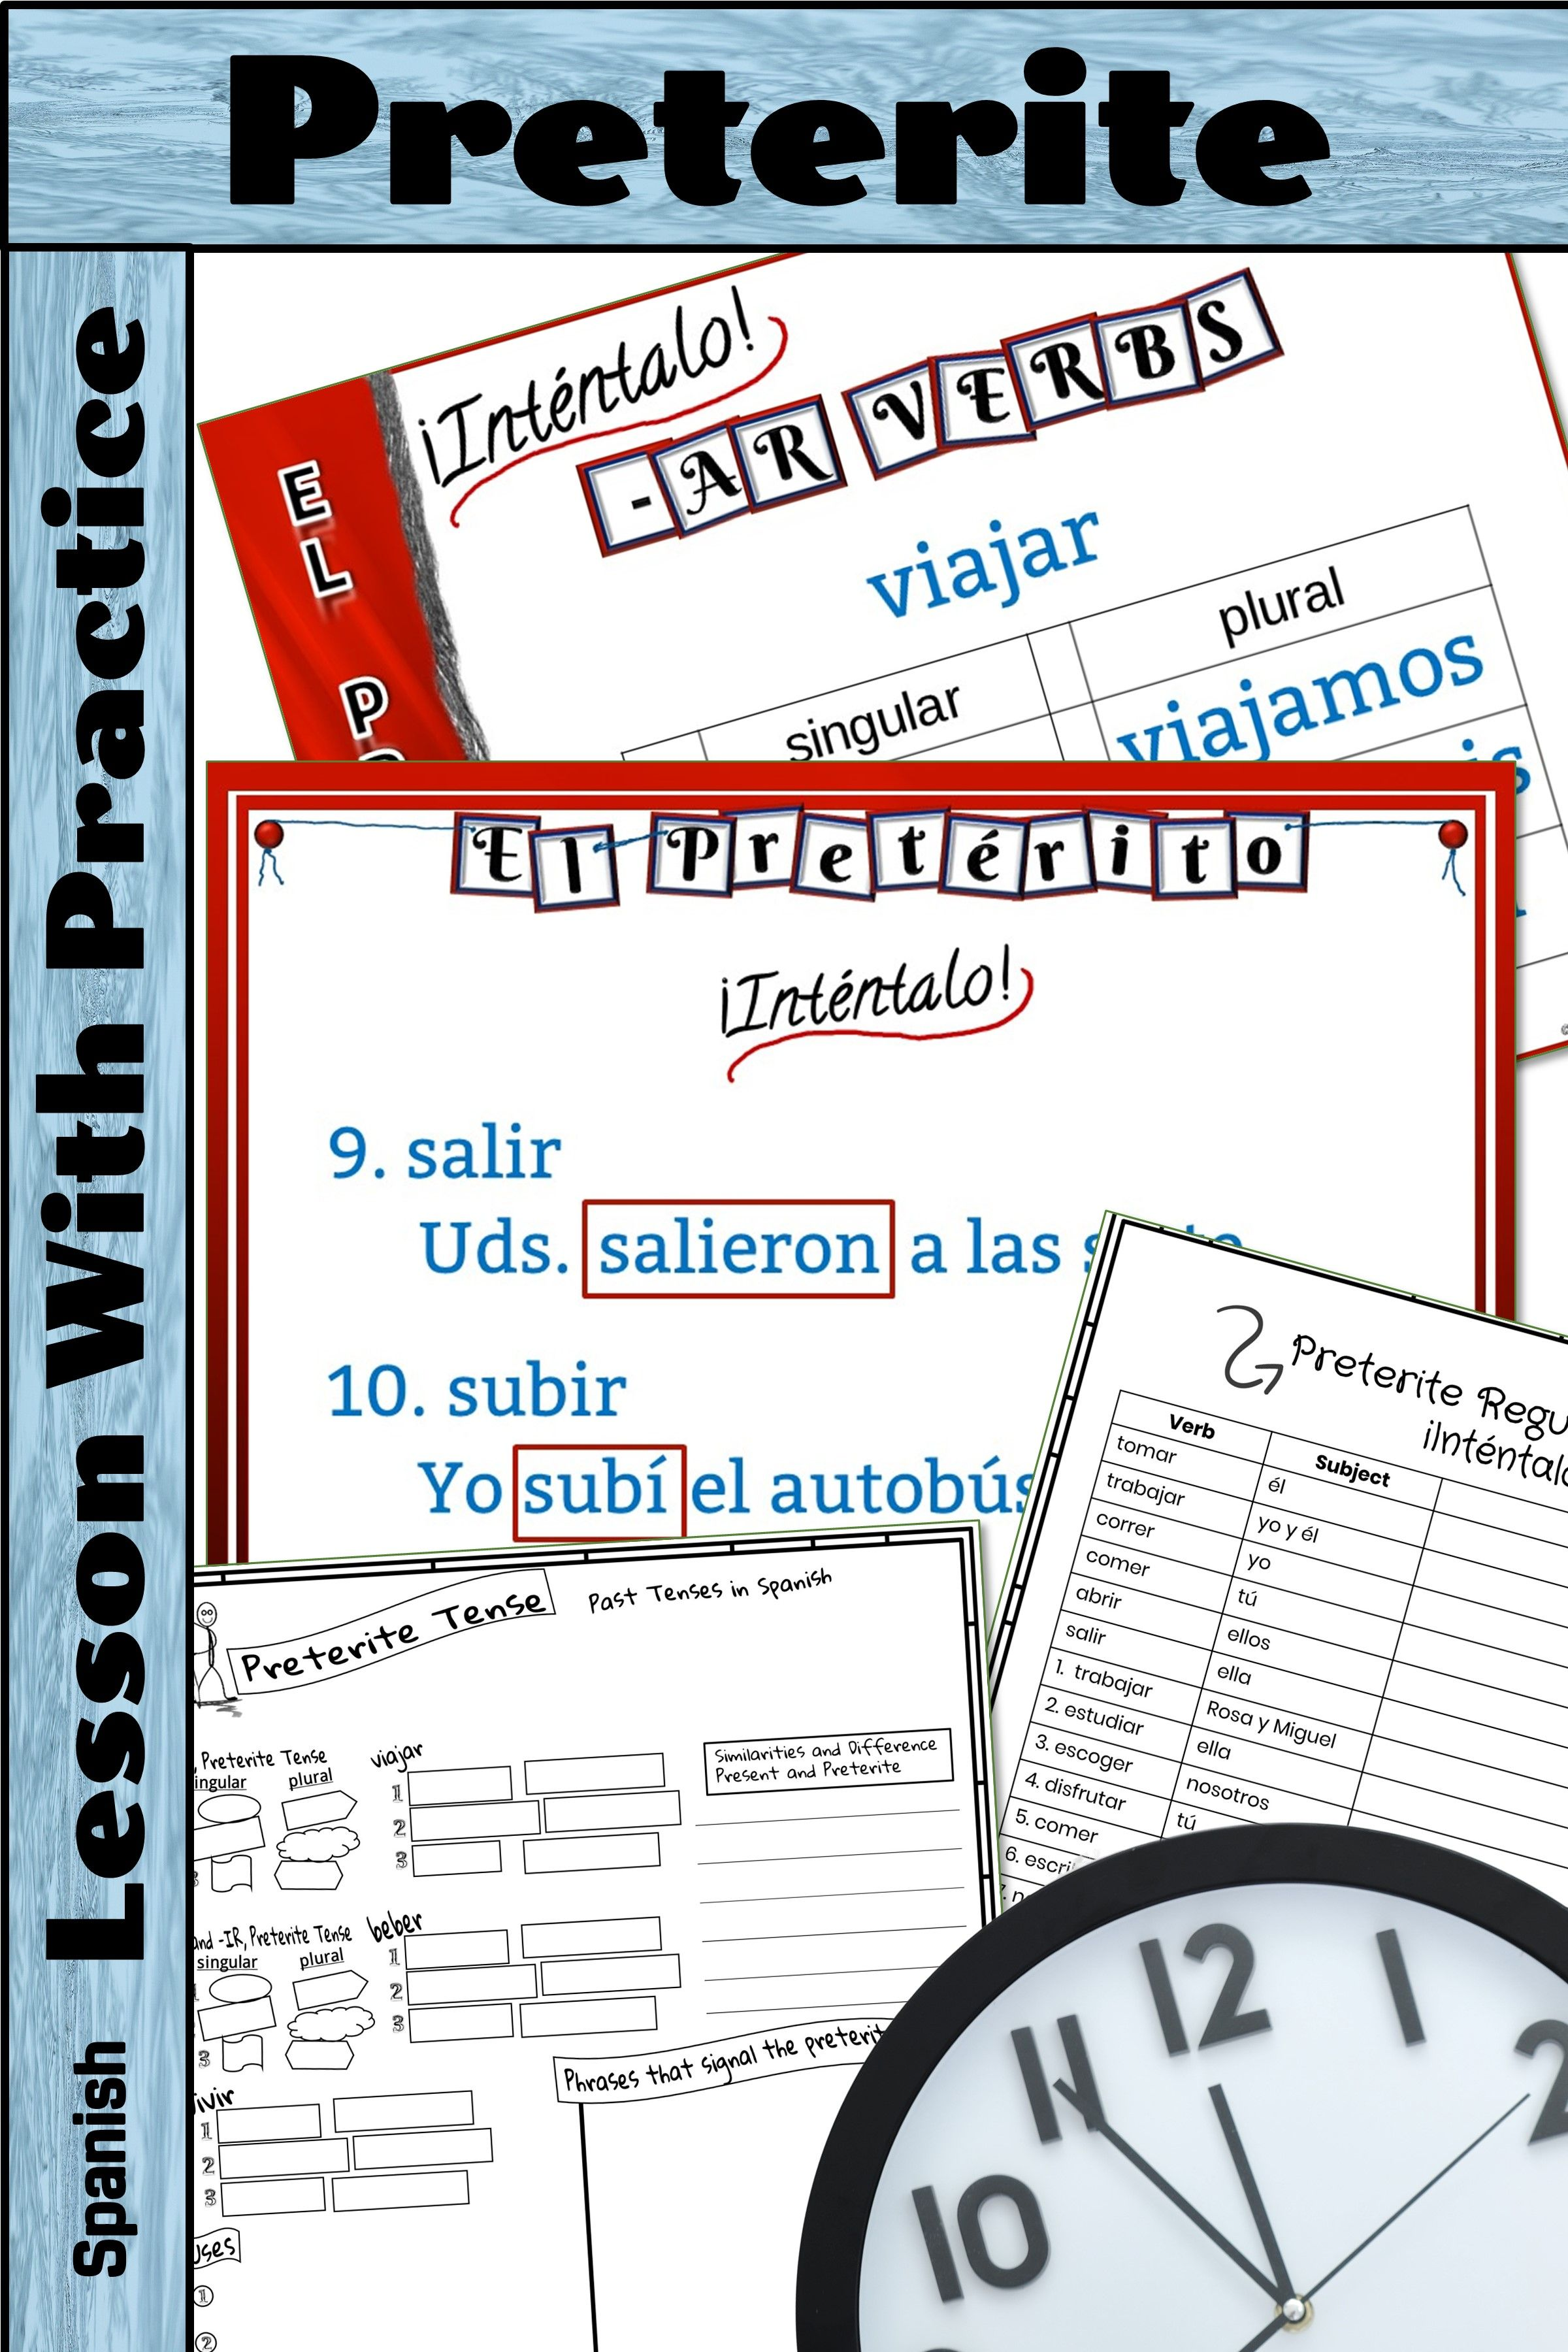 How To Conjugate And Use Verbs In The Preterite Tense In Spanish This Powerpoint Steps Students Through The Con Preterite Spanish Classroom Games Guided Notes [ 3600 x 2400 Pixel ]